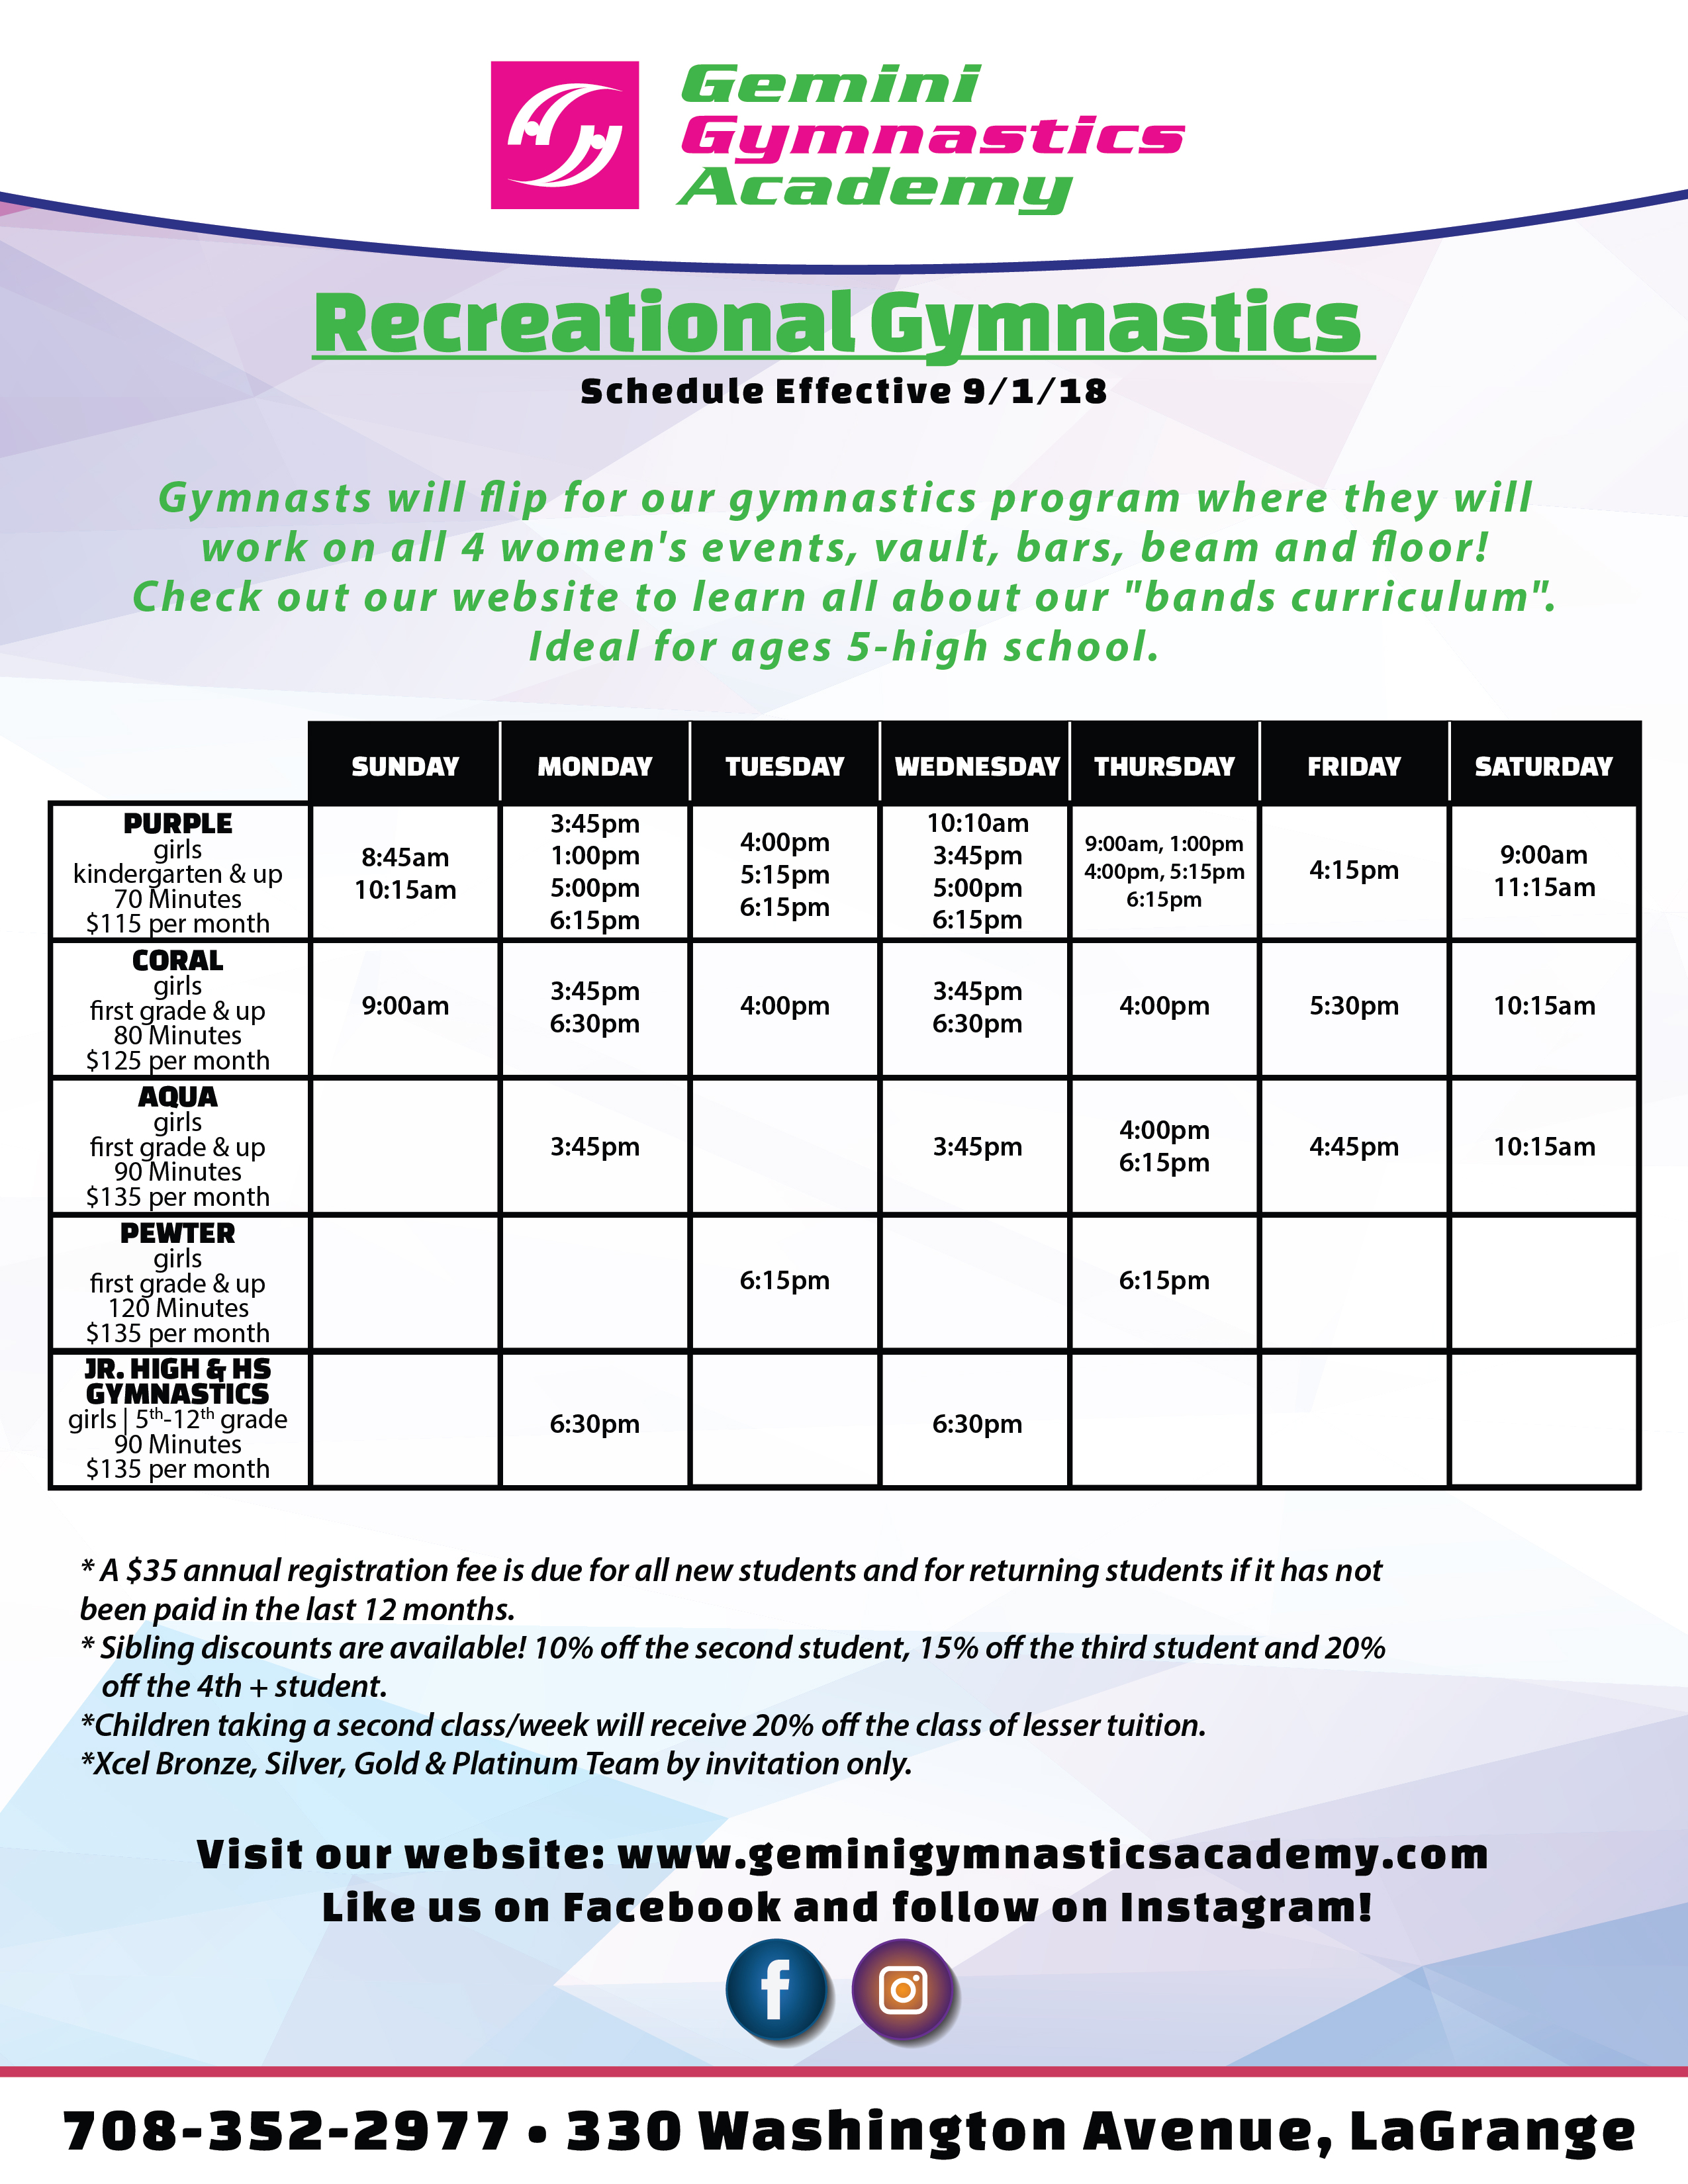 Gemini Gymnastics_Schedule_Seperated_April 2019-03